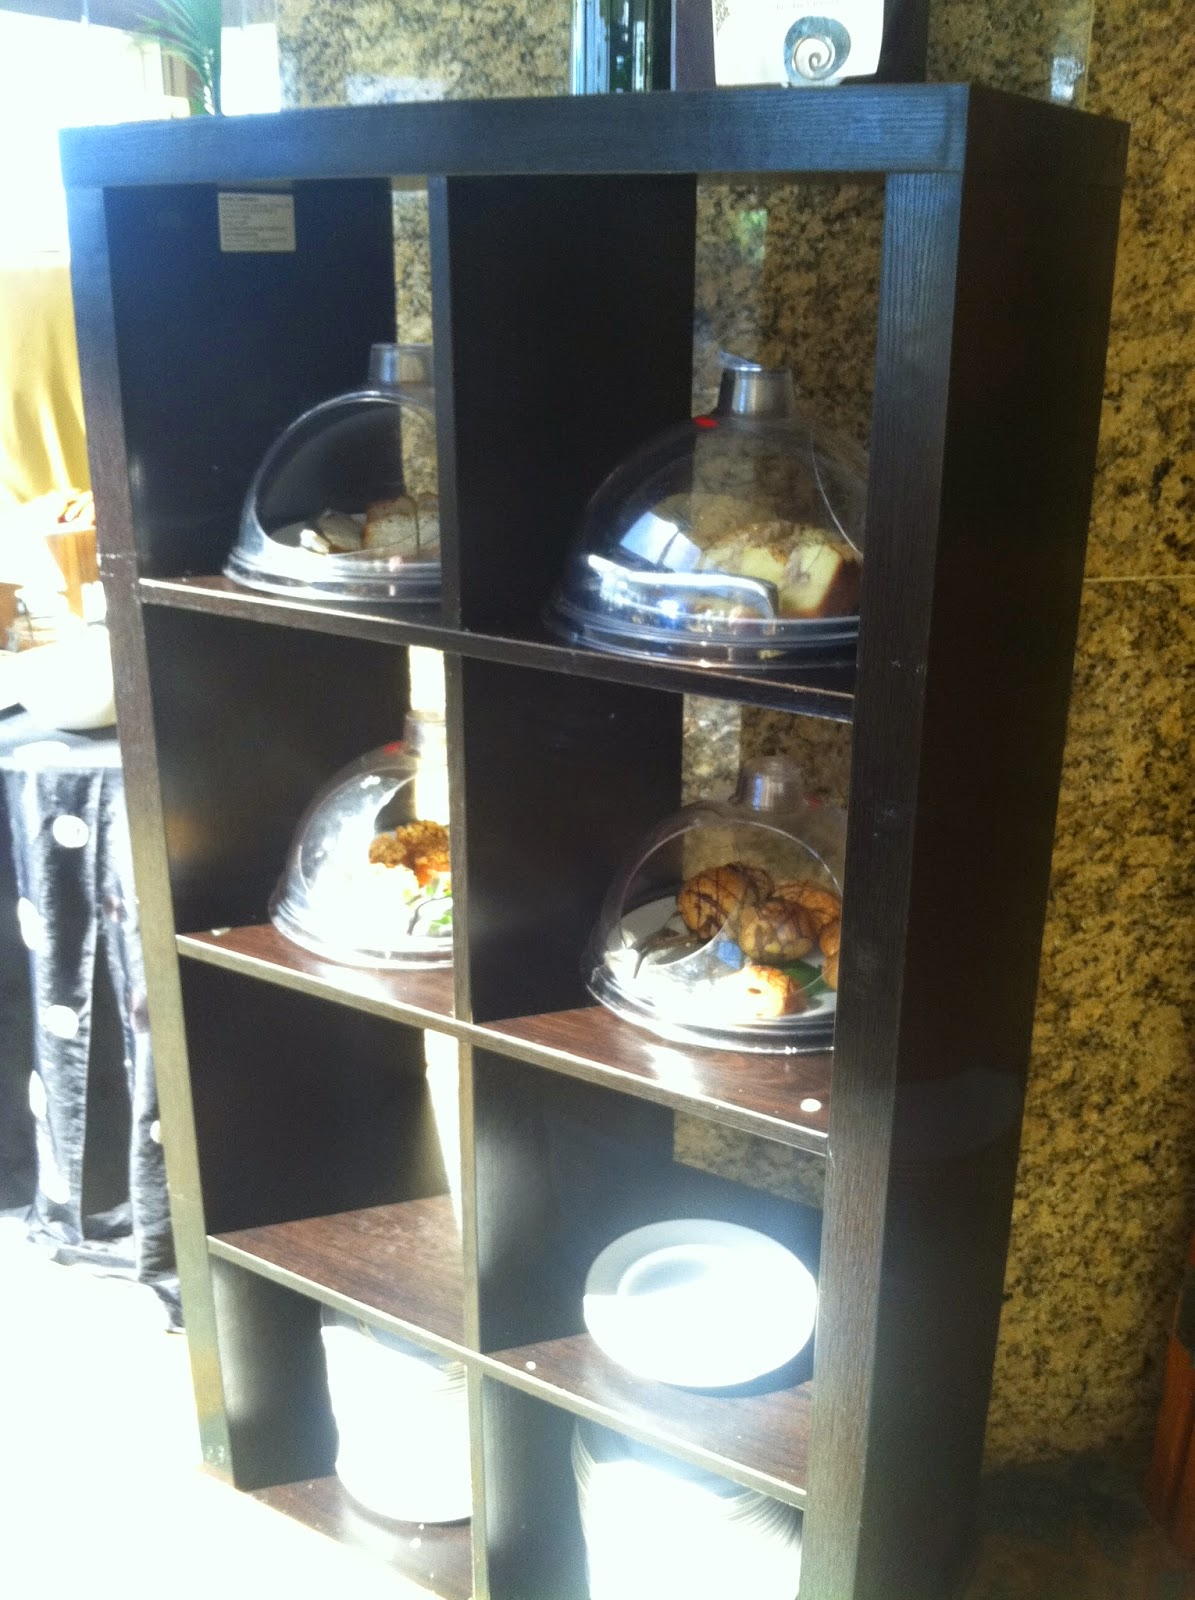 This bookshelf is perfect for displaying desserts